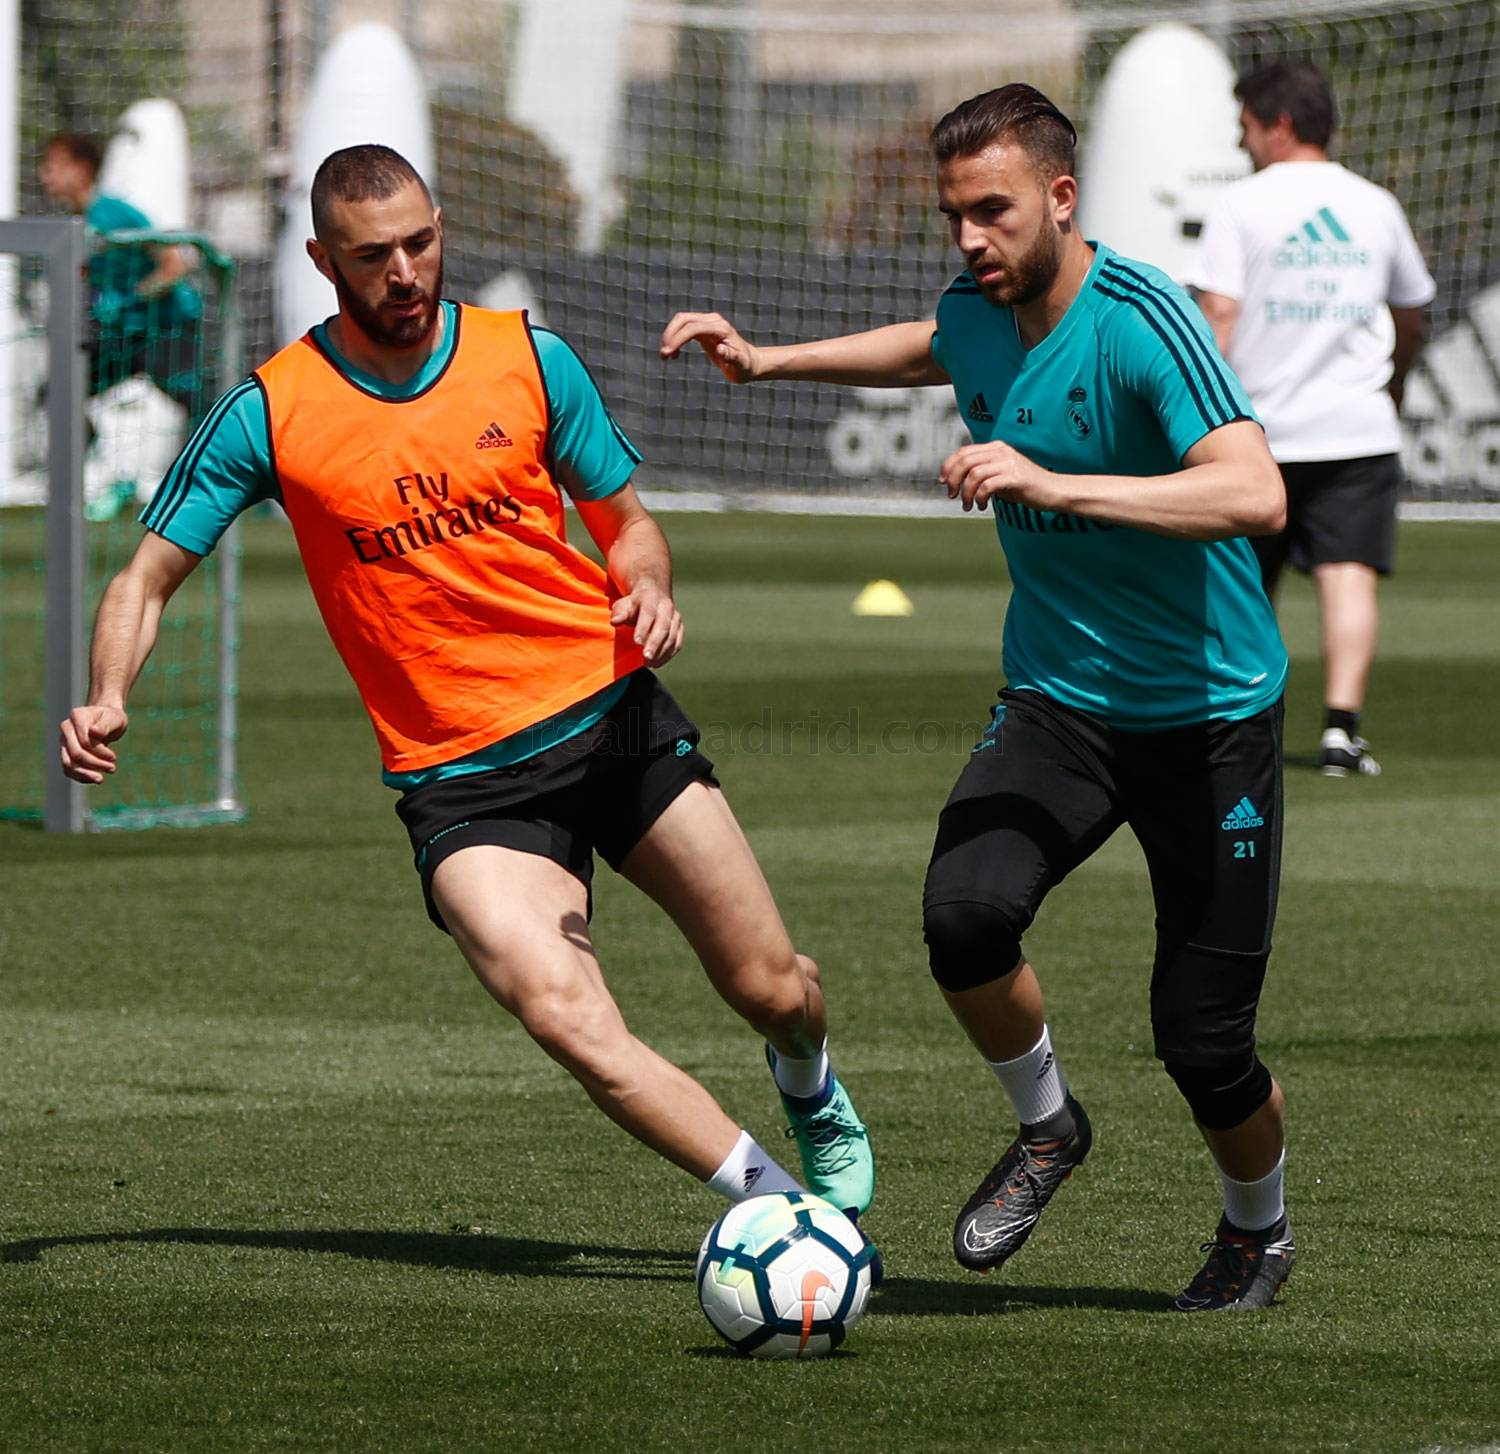 Real Madrid - Entrenamiento del Real Madrid - 26-04-2018